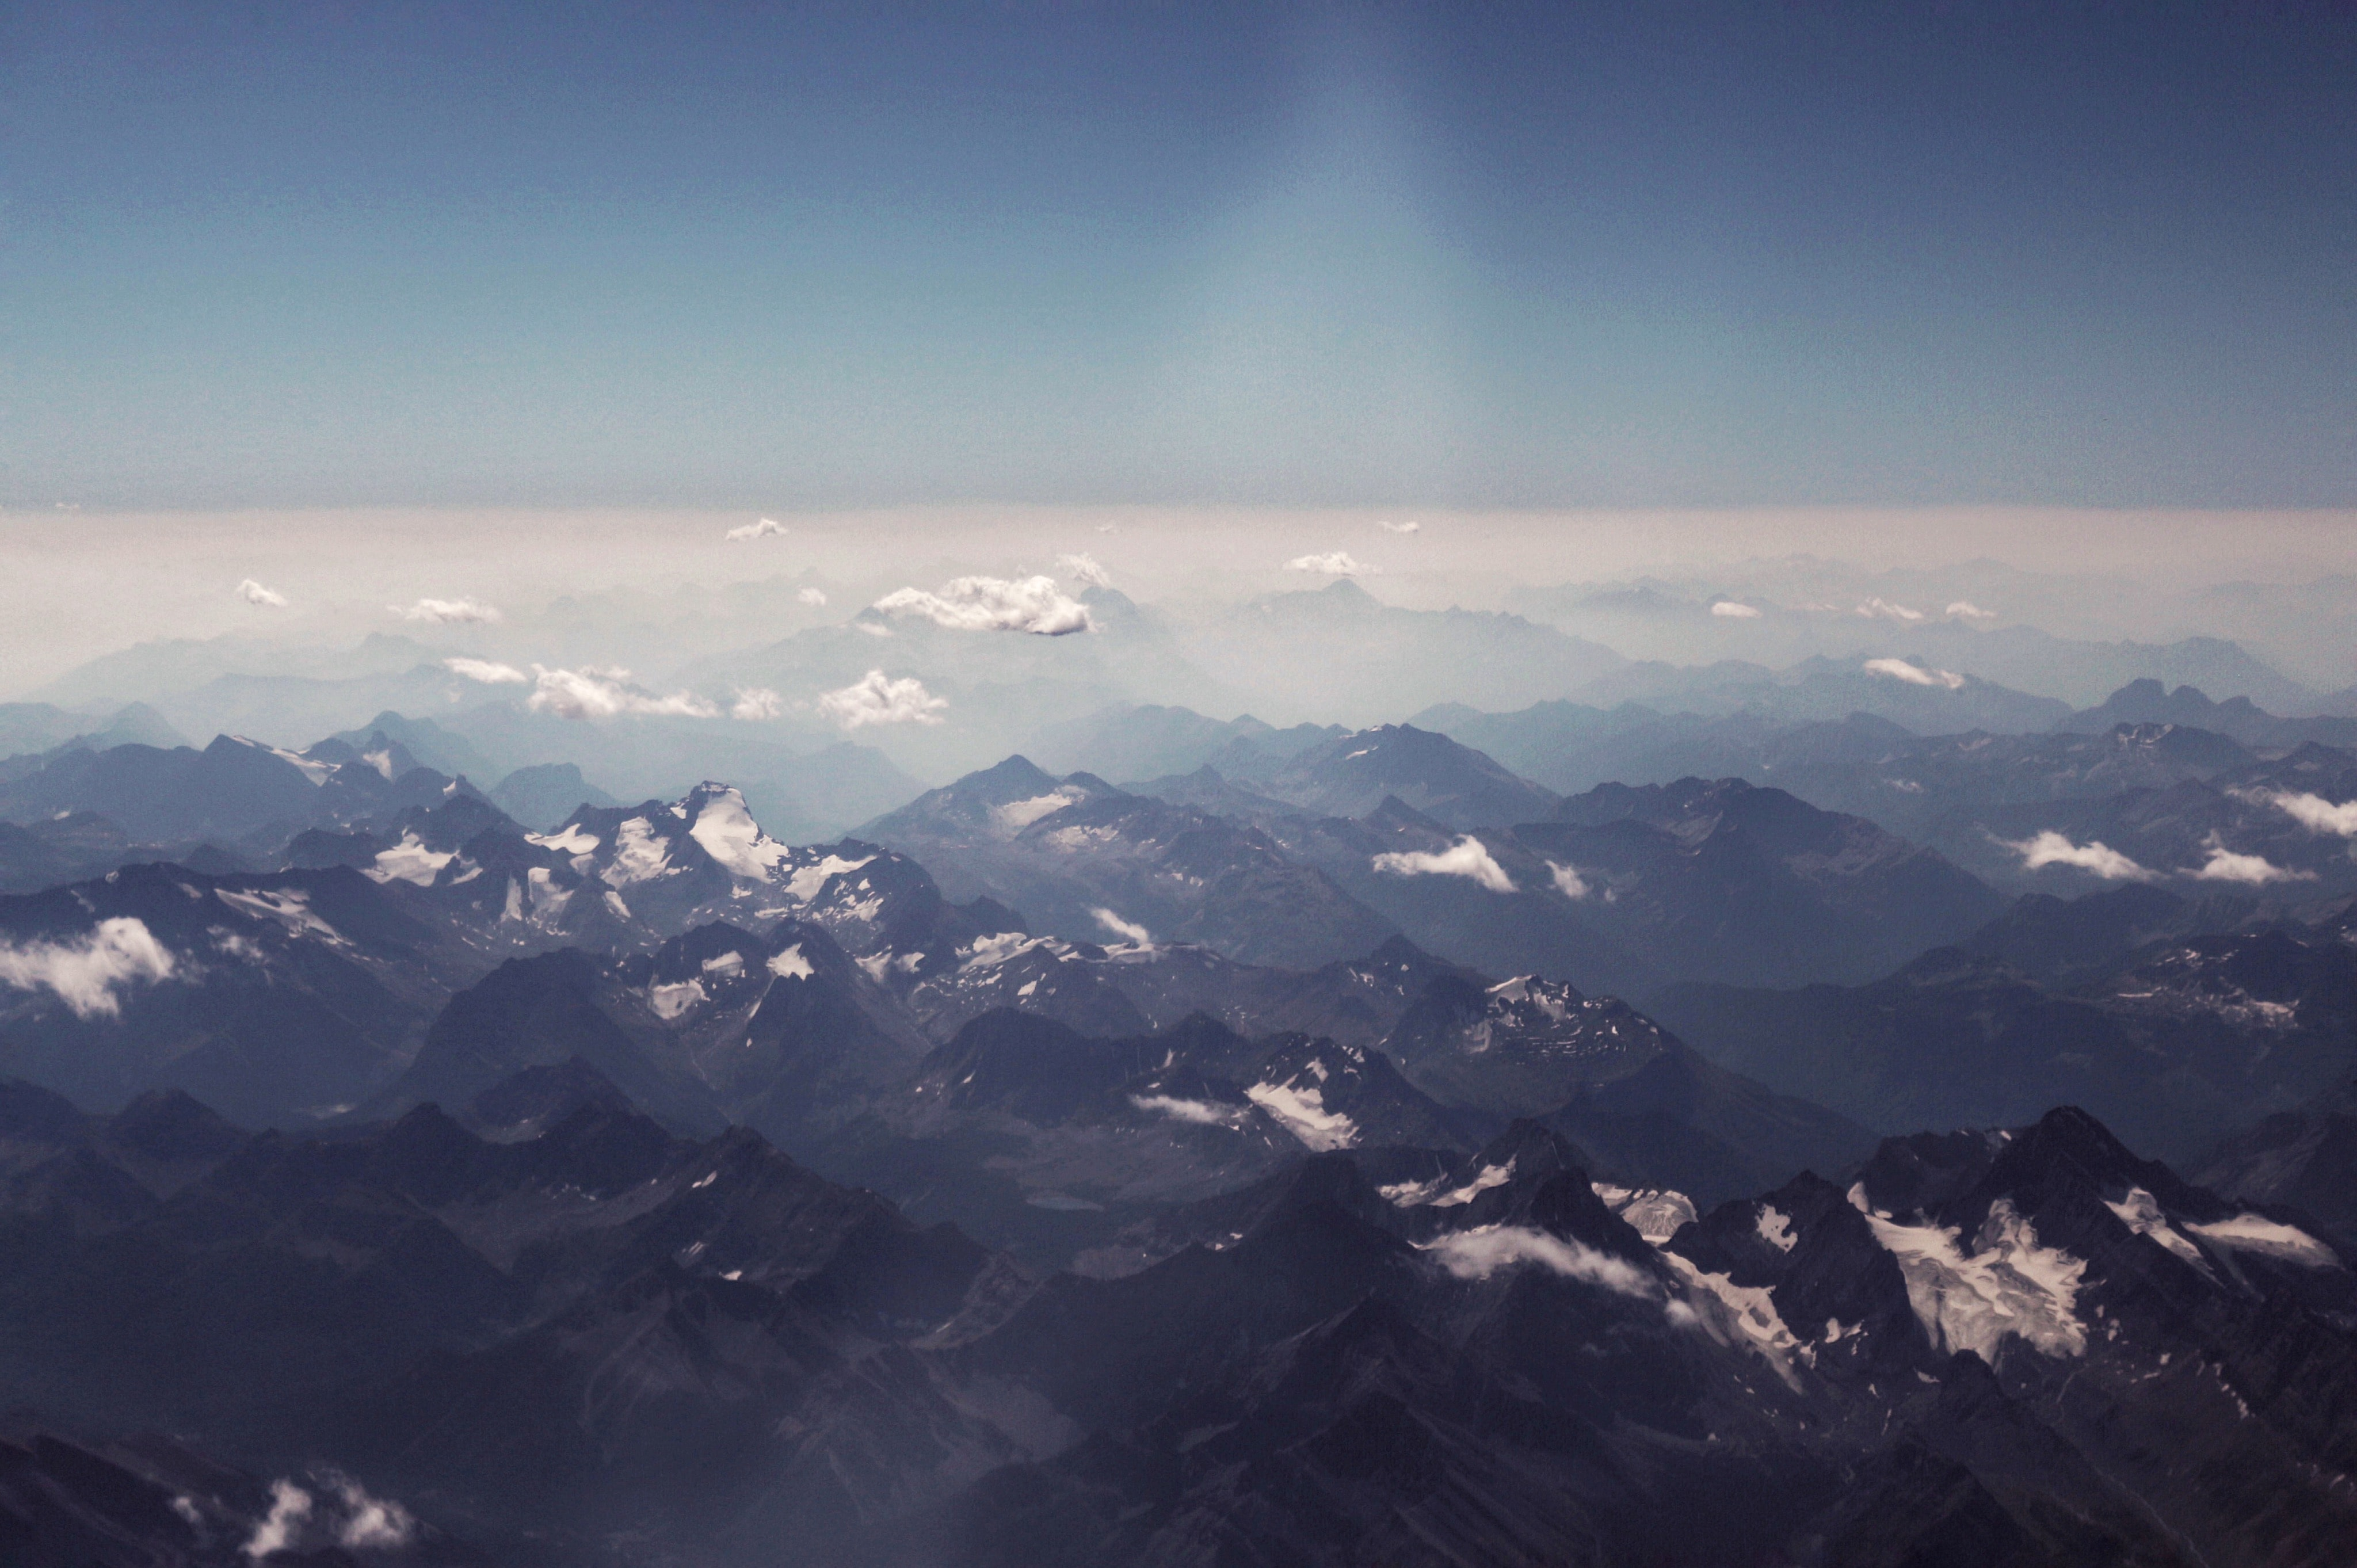 An aerial shot of a mountain range with small fluffy clouds between its peaks